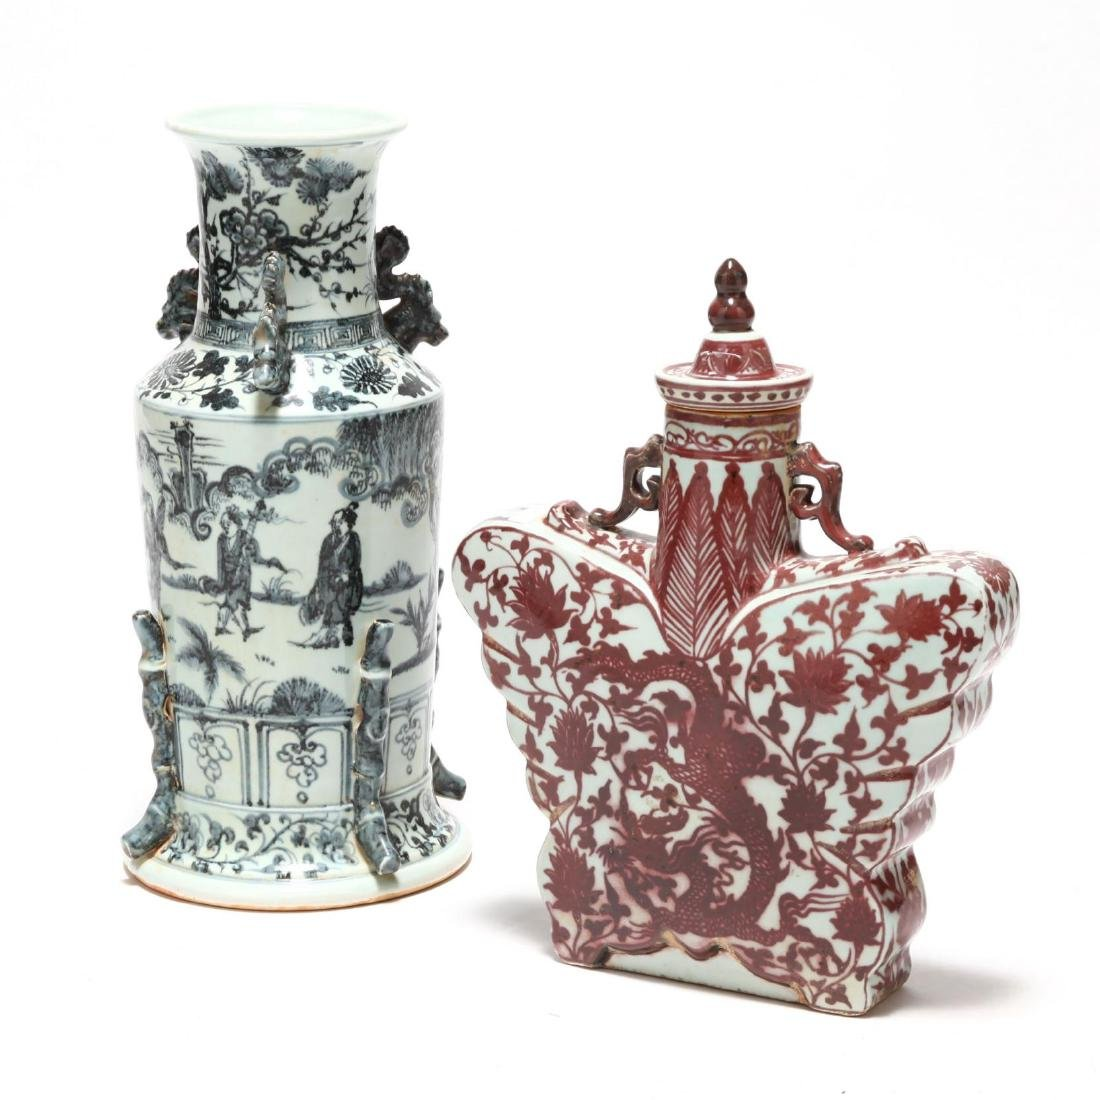 Two Decorative Chinese Urns